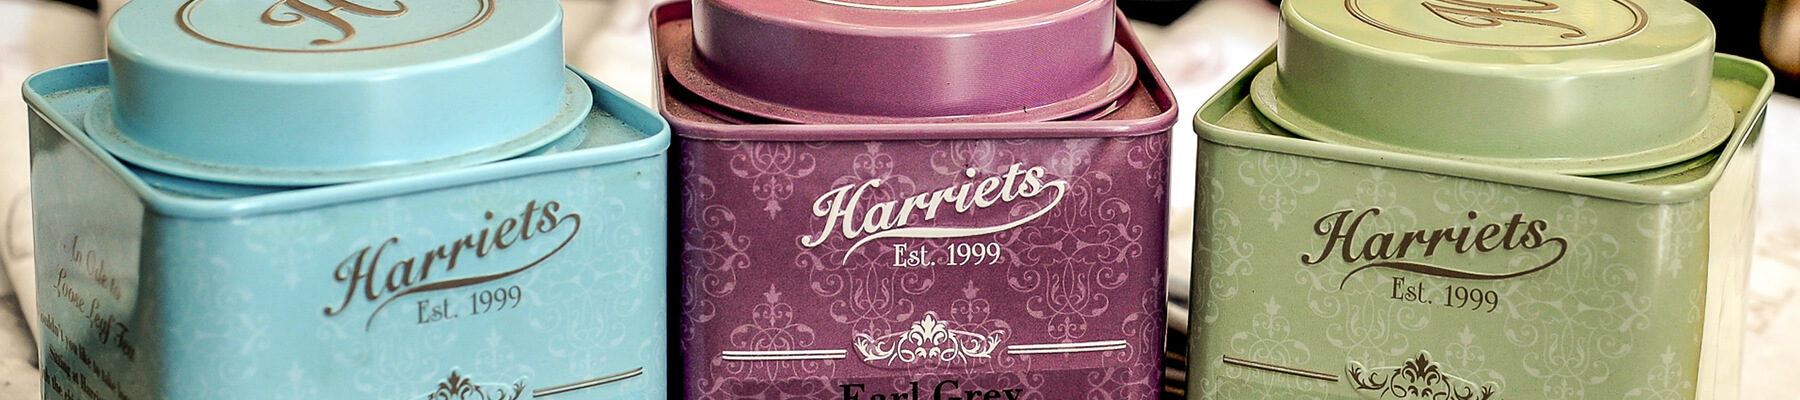 Harriets Cafe Tearooms Online Store